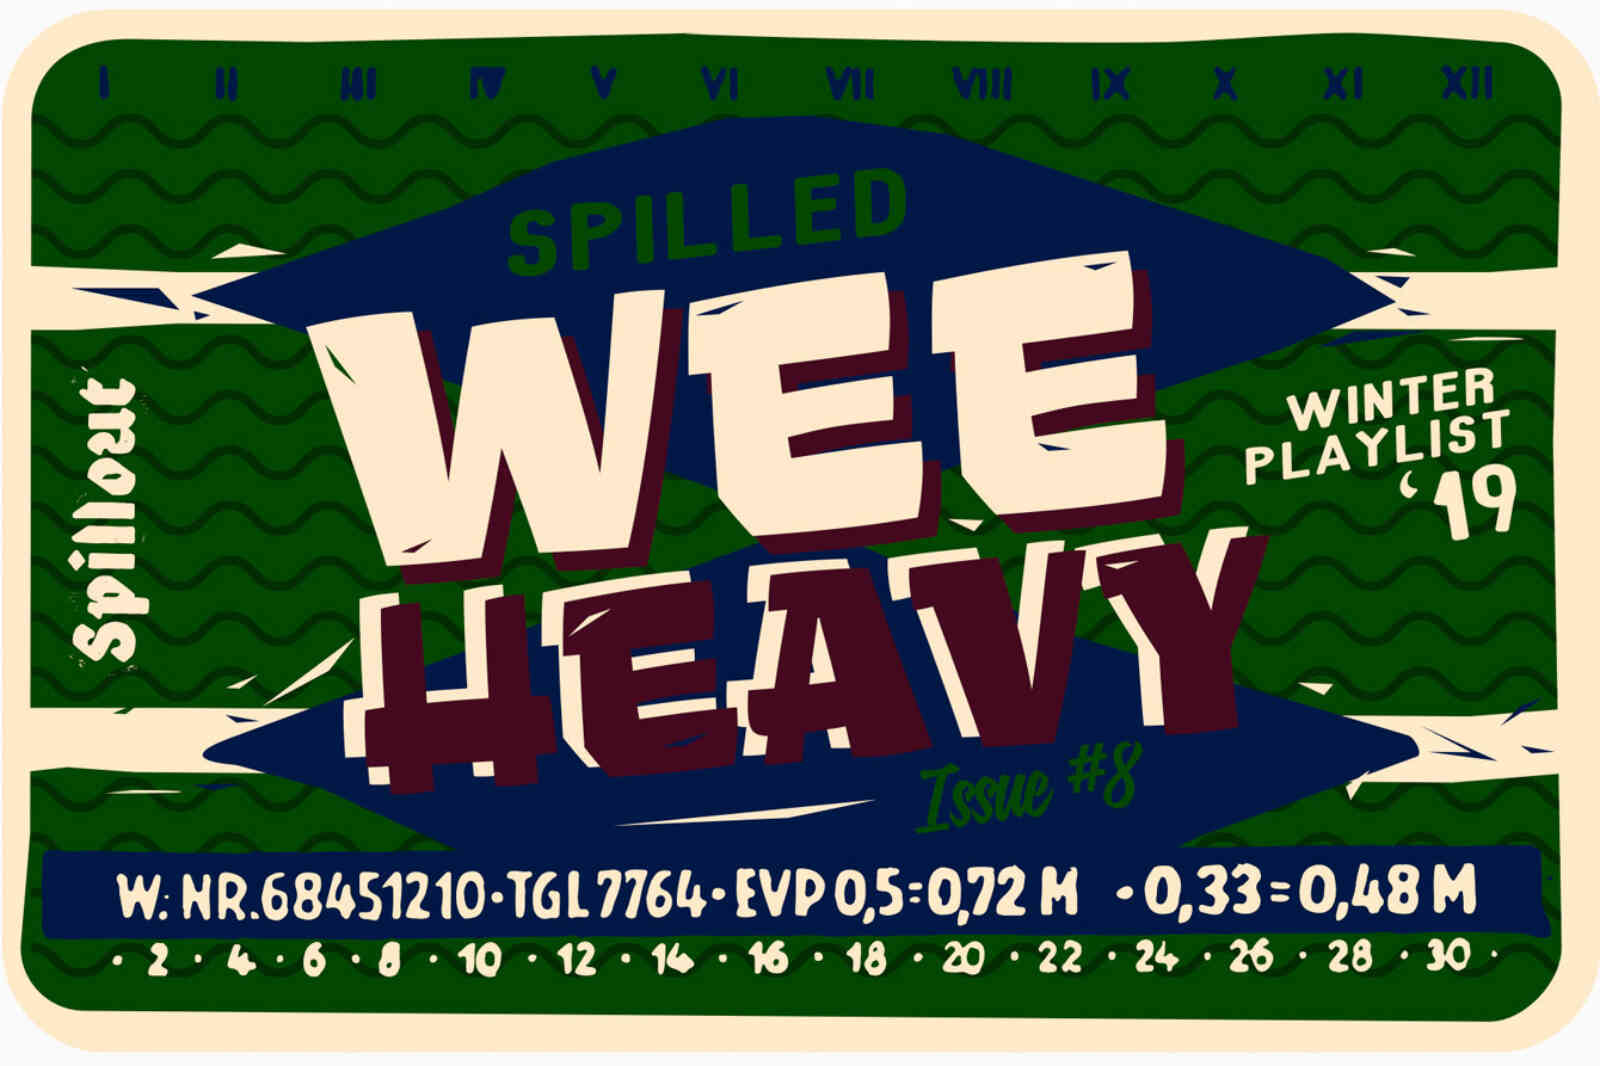 Playlist winter spilled wee heavy 1340